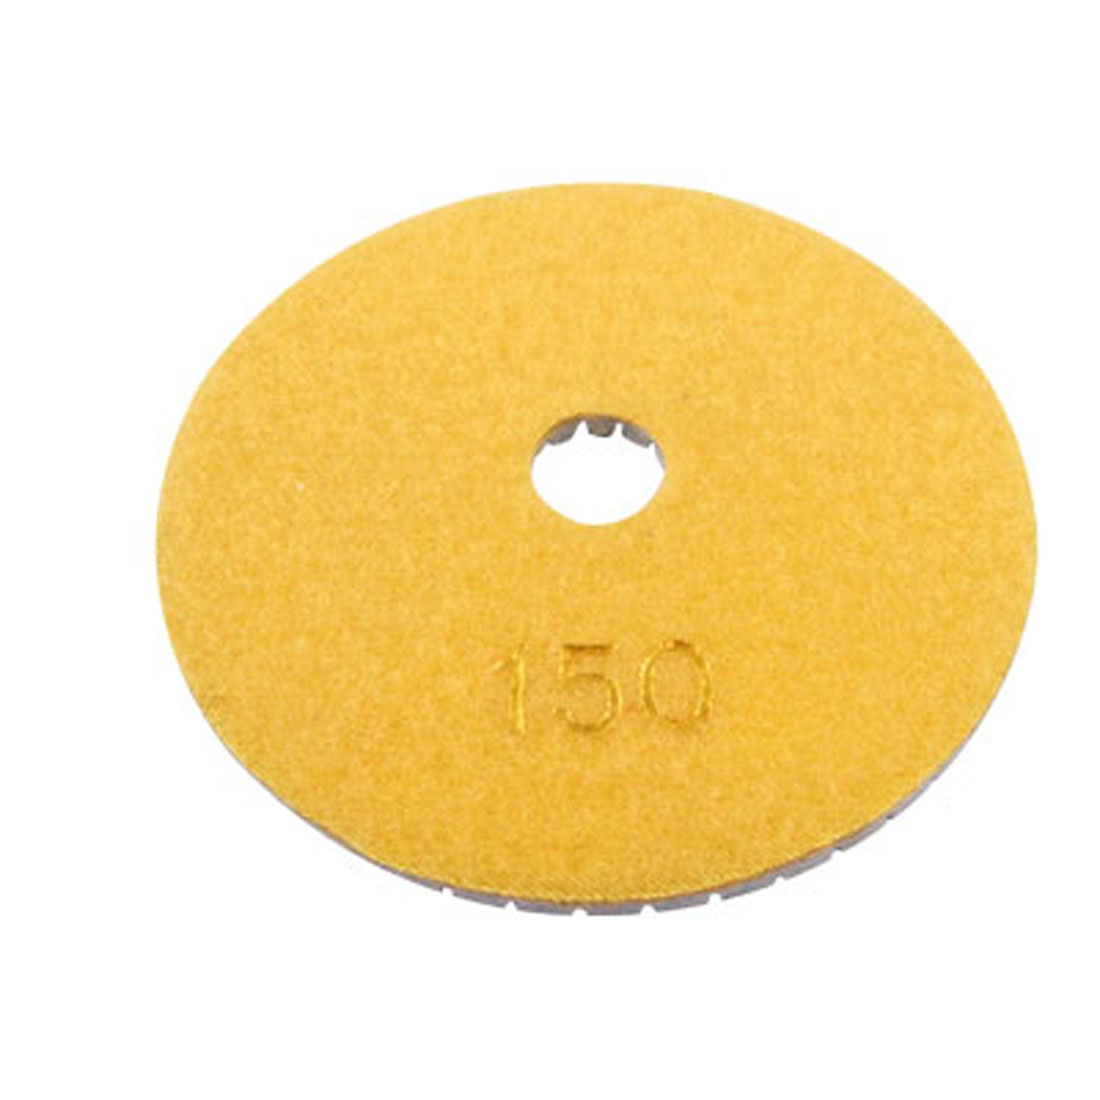 "4"" Inch 150 Grit Buffing Wet Dry Diamond Polishing Pad Disc for Concrete Stone Marble"